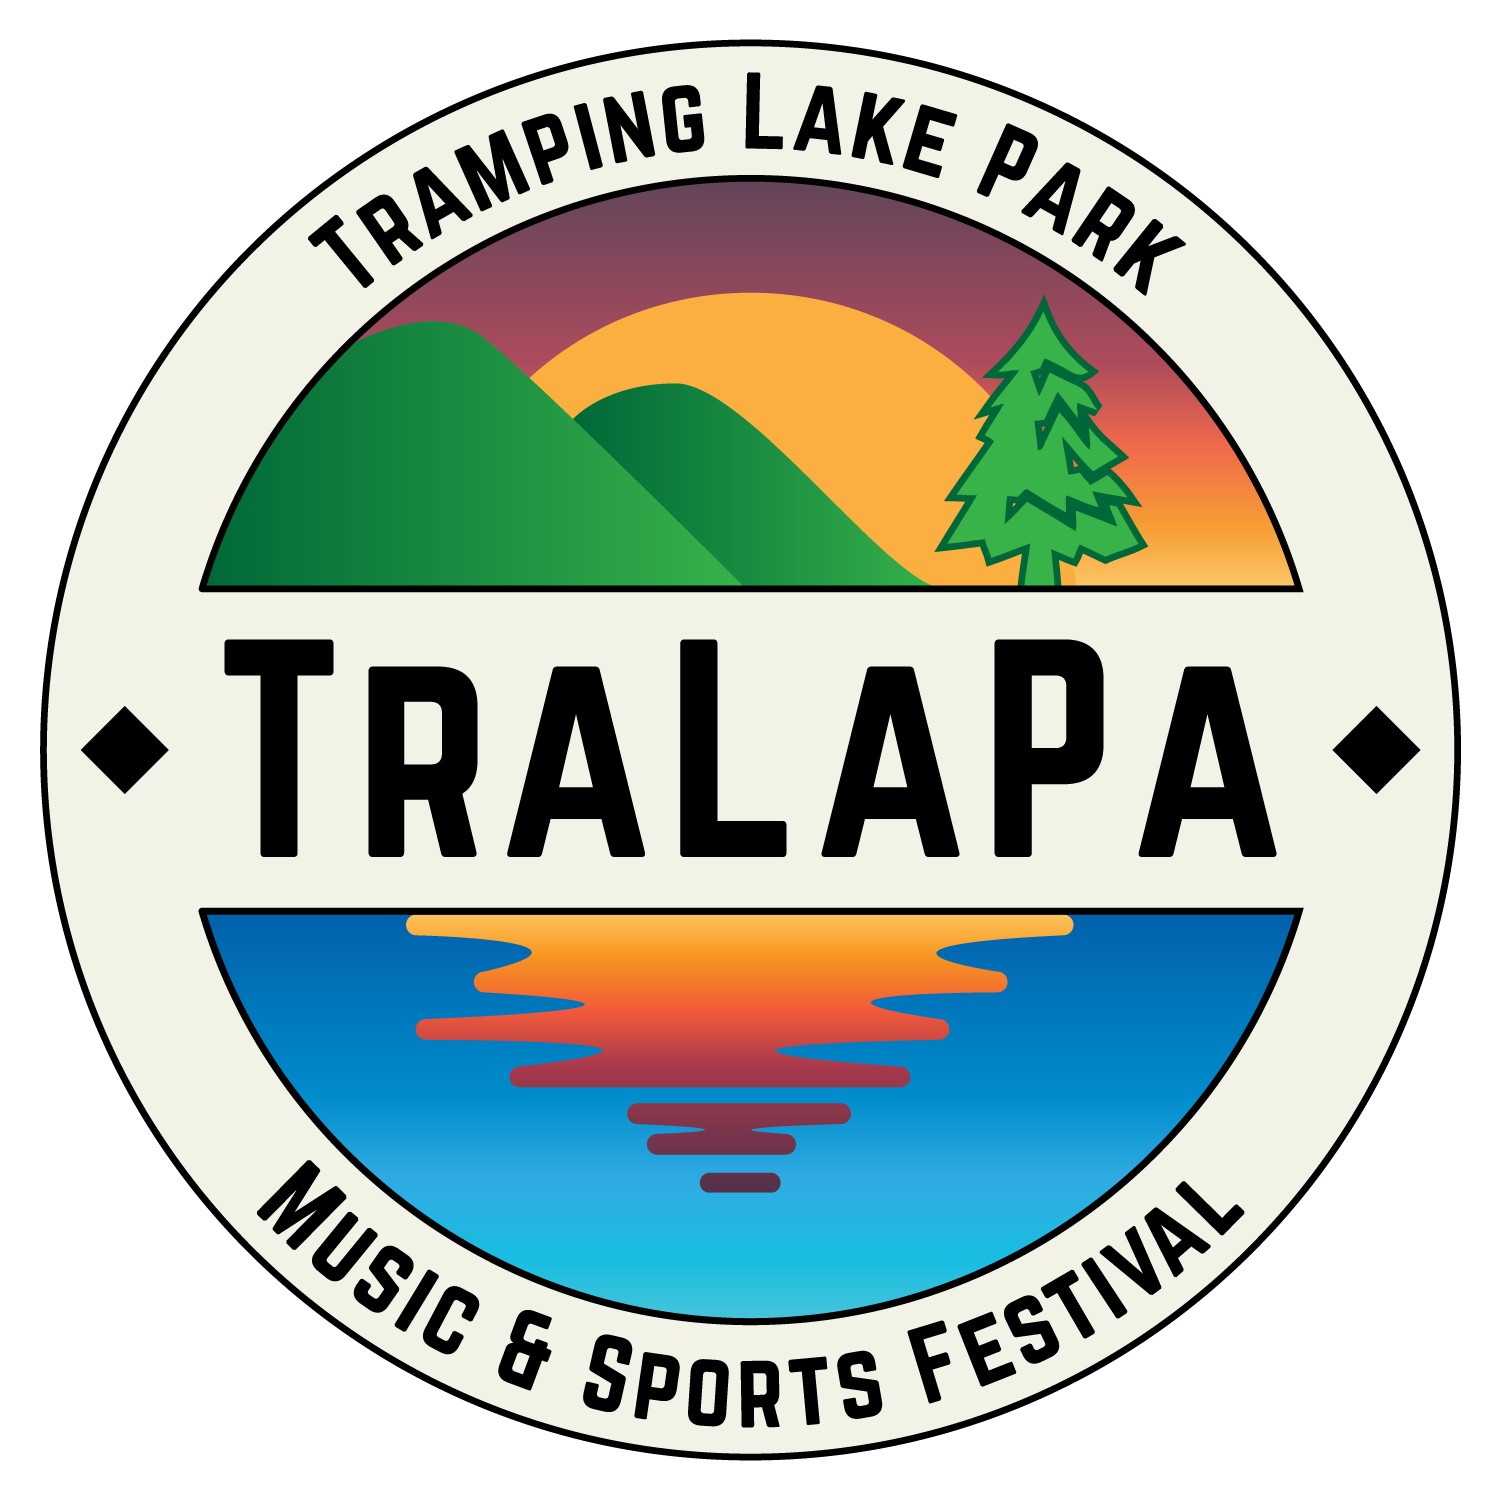 Tralapa Music & Sports Festival